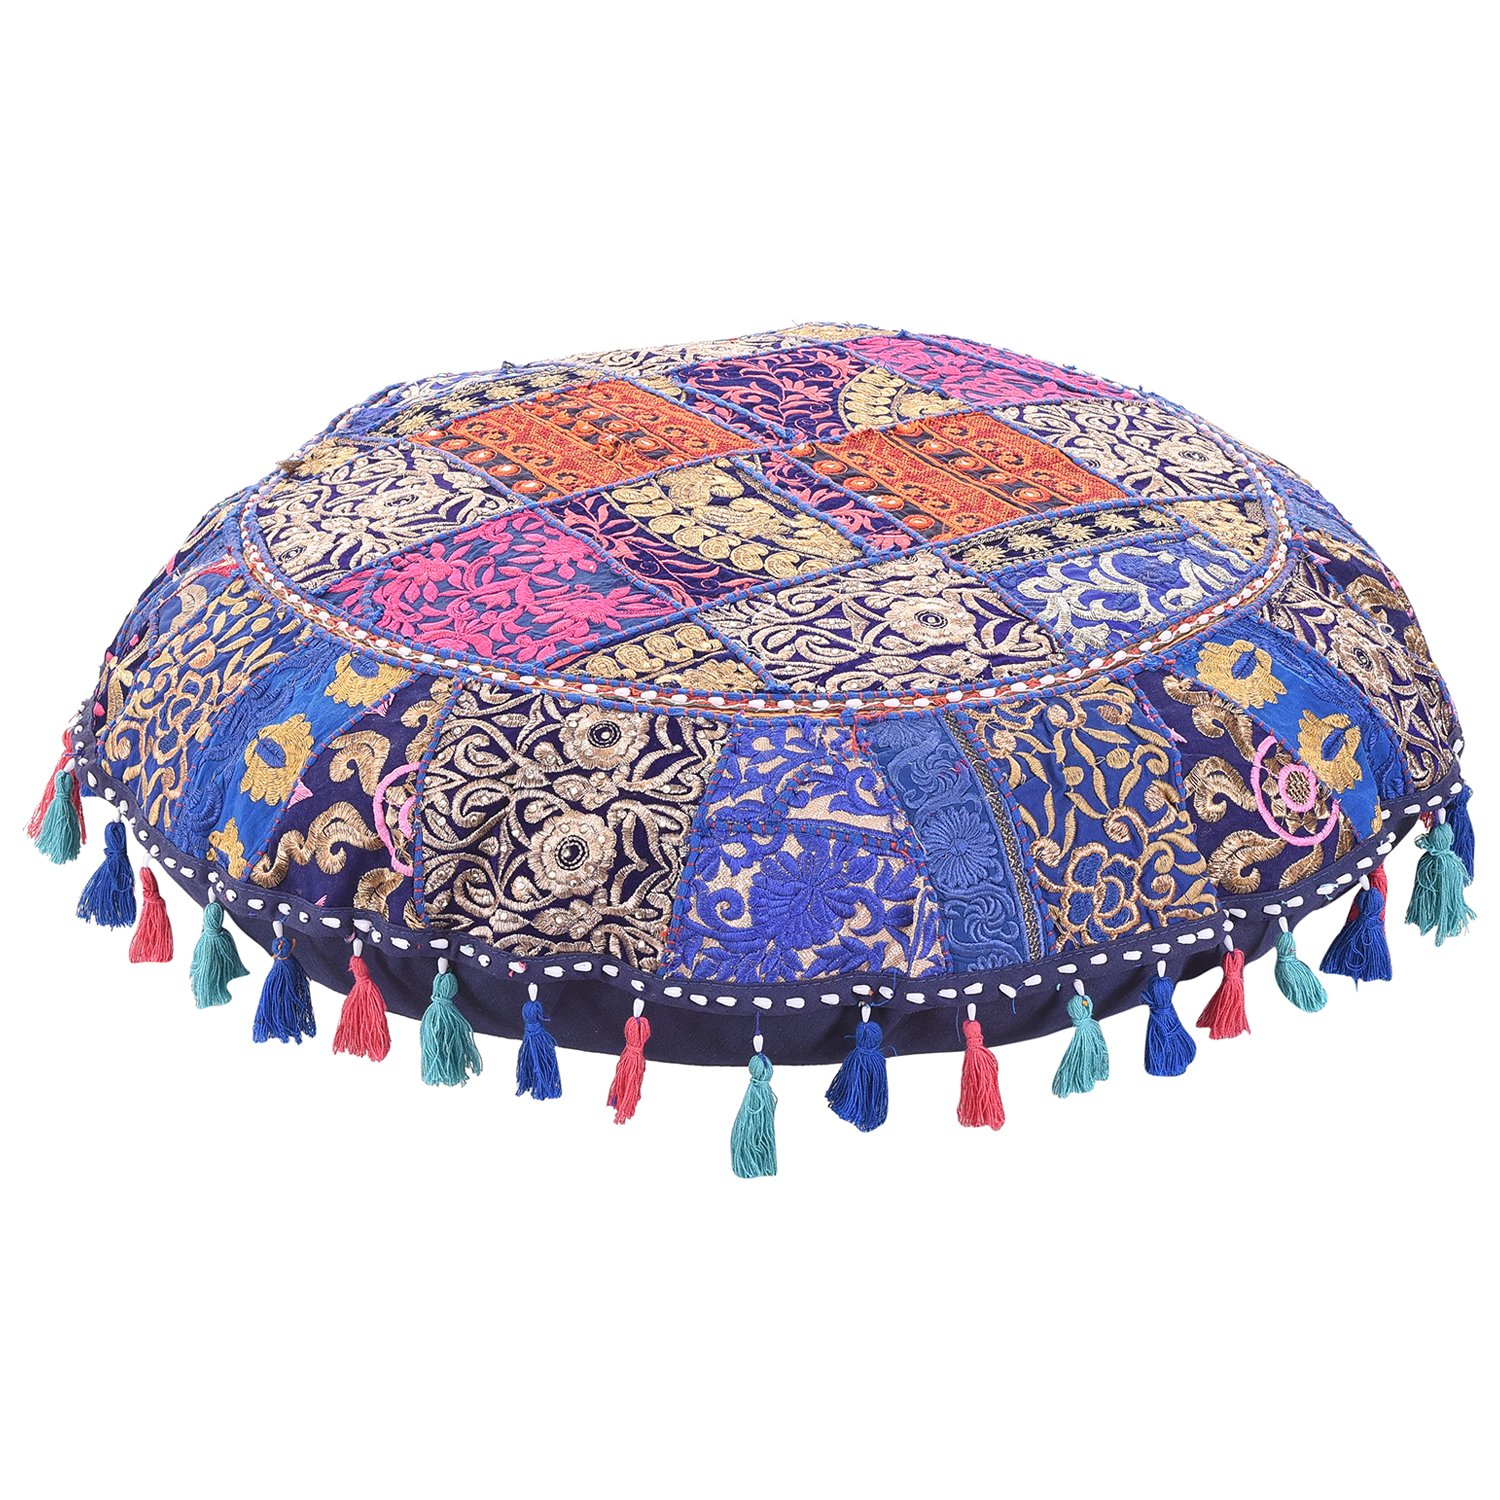 MyCrafts Decorative Throw Vintage Pouf Cover Round Pillow Cover, Handmade Cotton Ottoman Patchwork Foot Stool- Floor Cushion Decor,Embroidered Chair Cover, Decorative Throw Cotton Foot Stool 22'' FPS00005